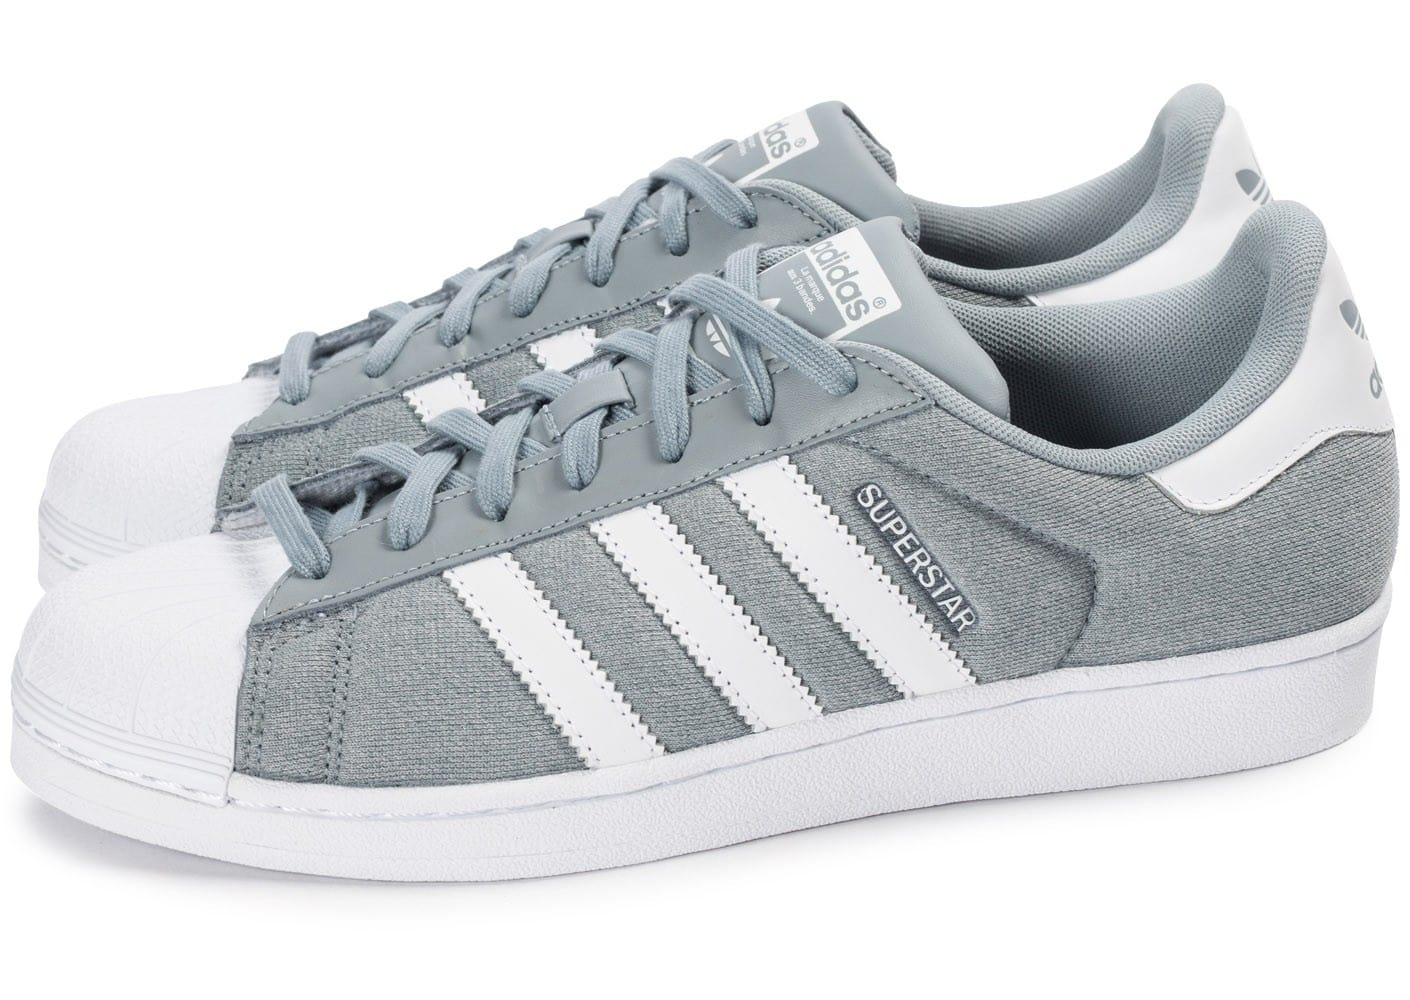 adidas Superstar Summer Pack grise - Chaussures